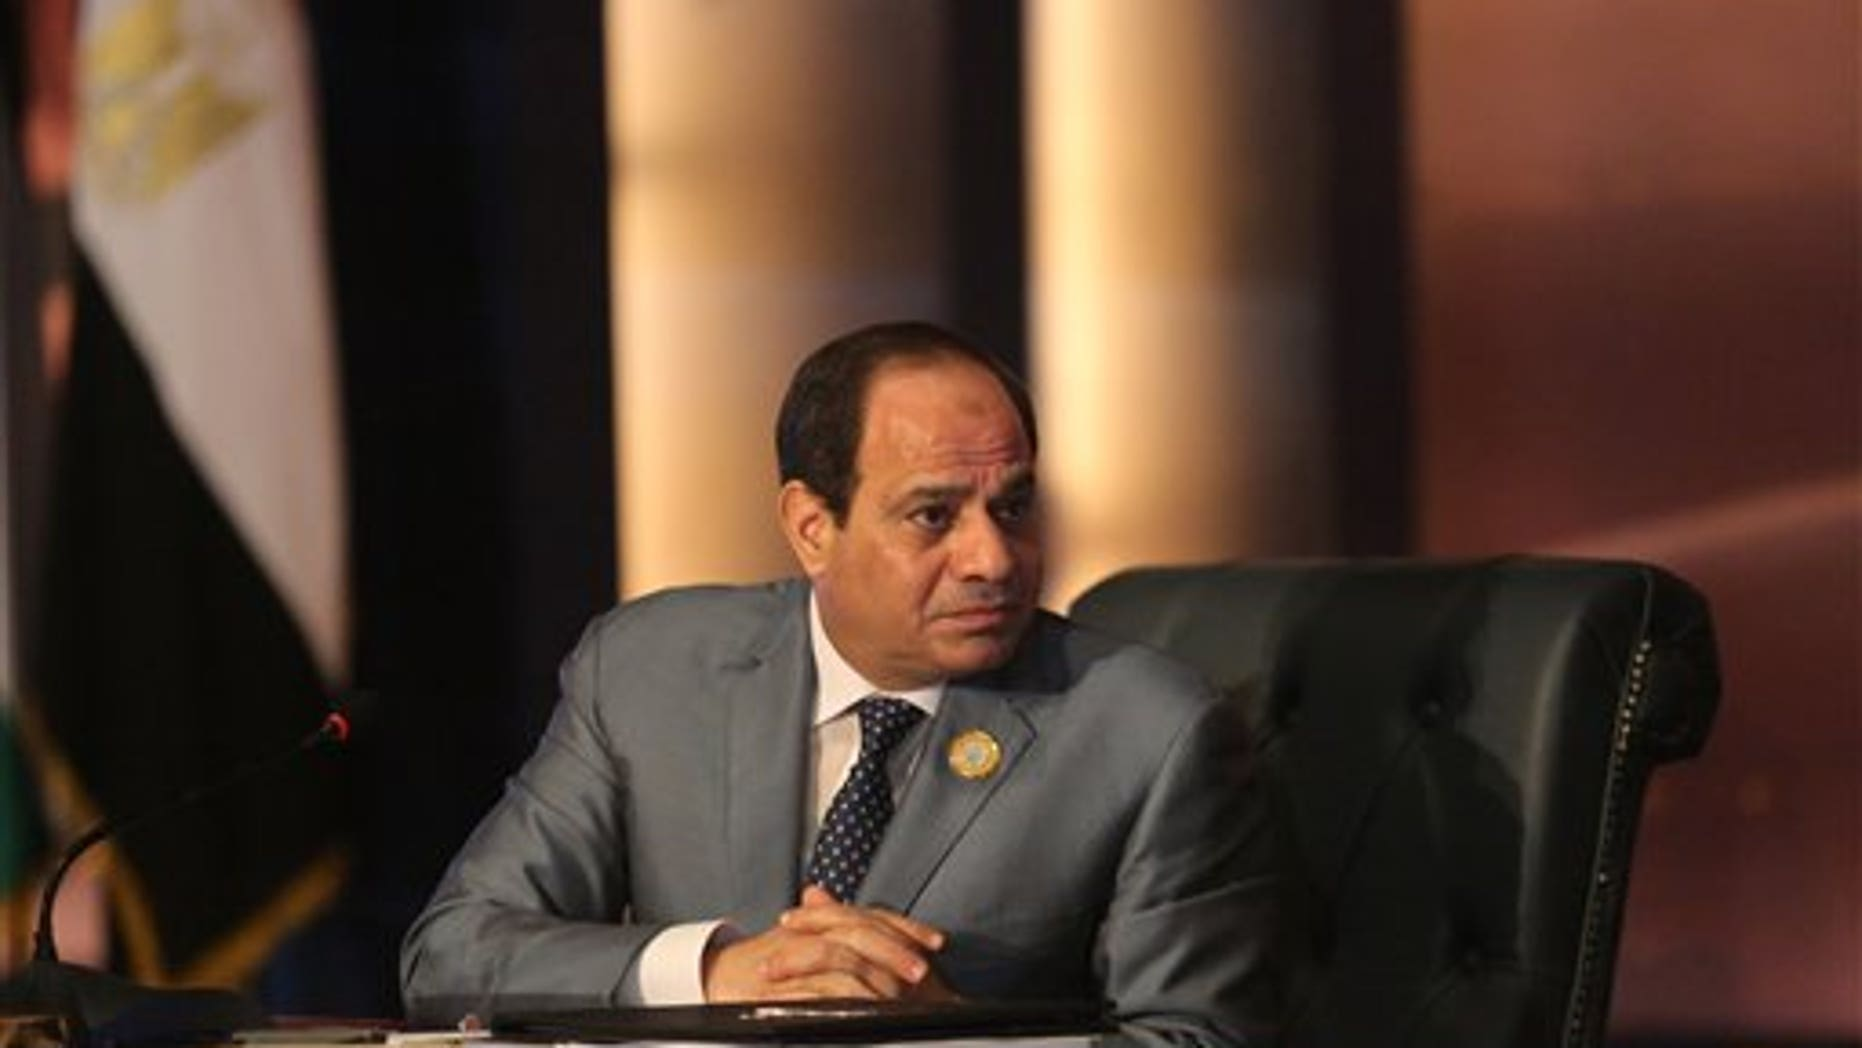 Egyptian President Abdel Fattah el-Sisi chairs an Arab foreign ministers meeting during summit in Sharm el-Sheikh, South Sinai, Egypt, Sunday, March 29, 2015.